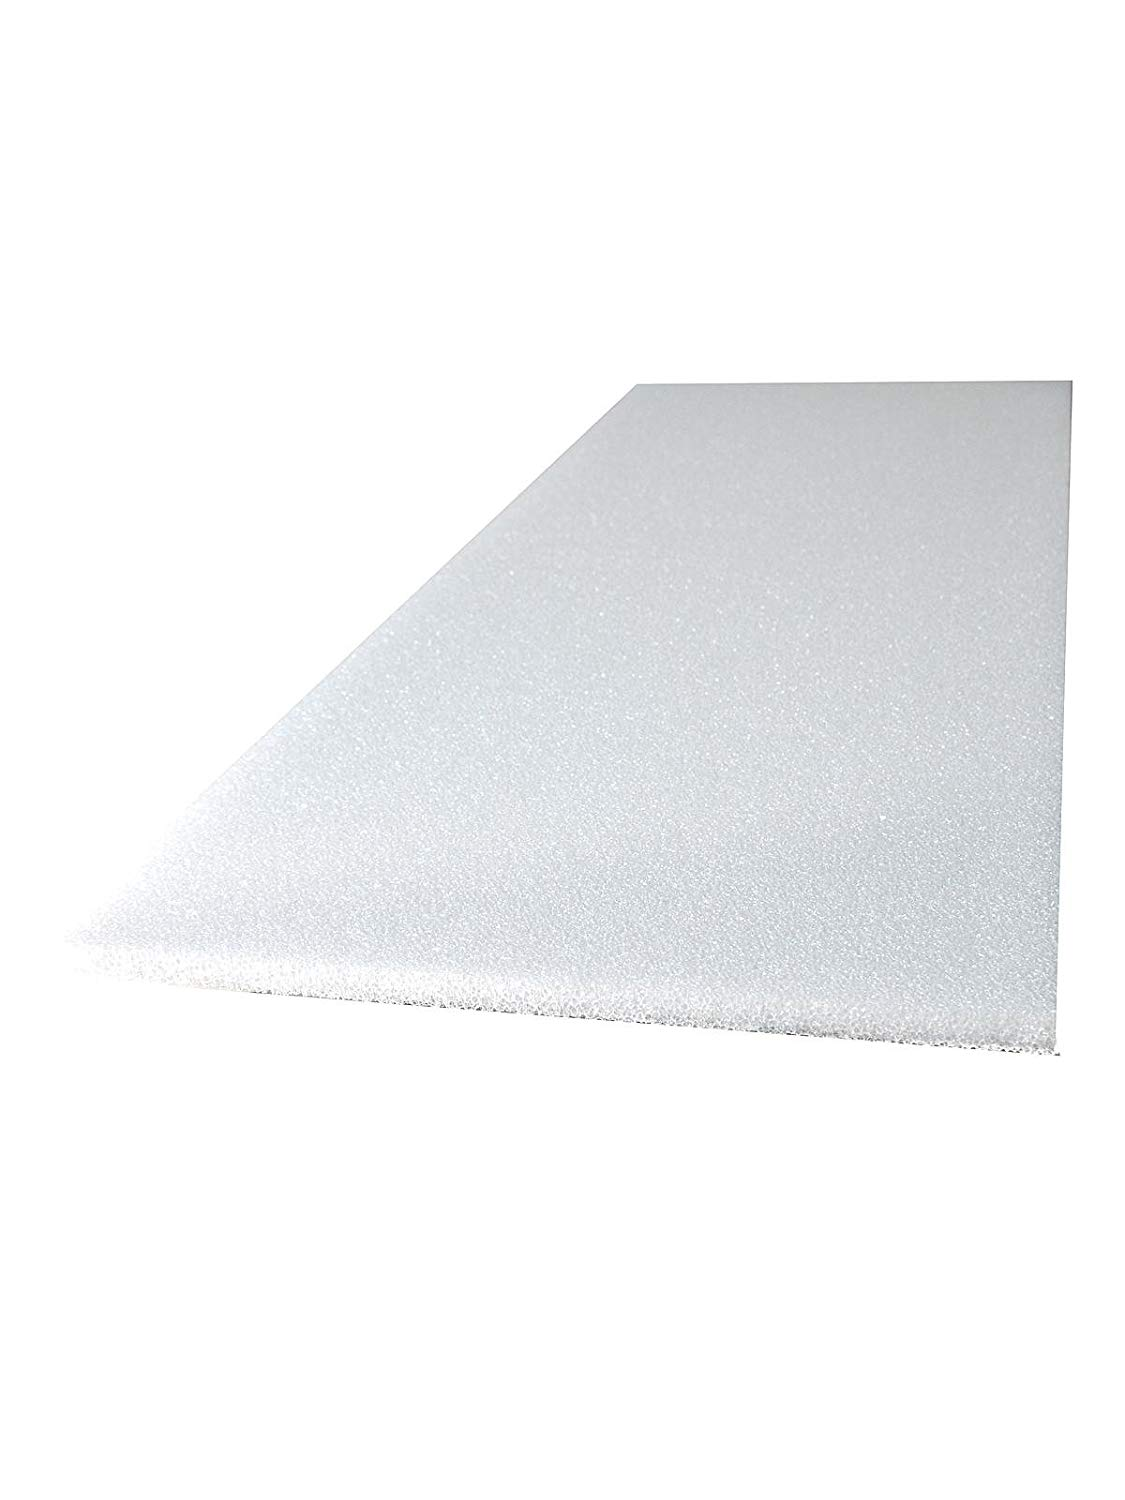 4 inch thick styrofoam sheets lly lift pump